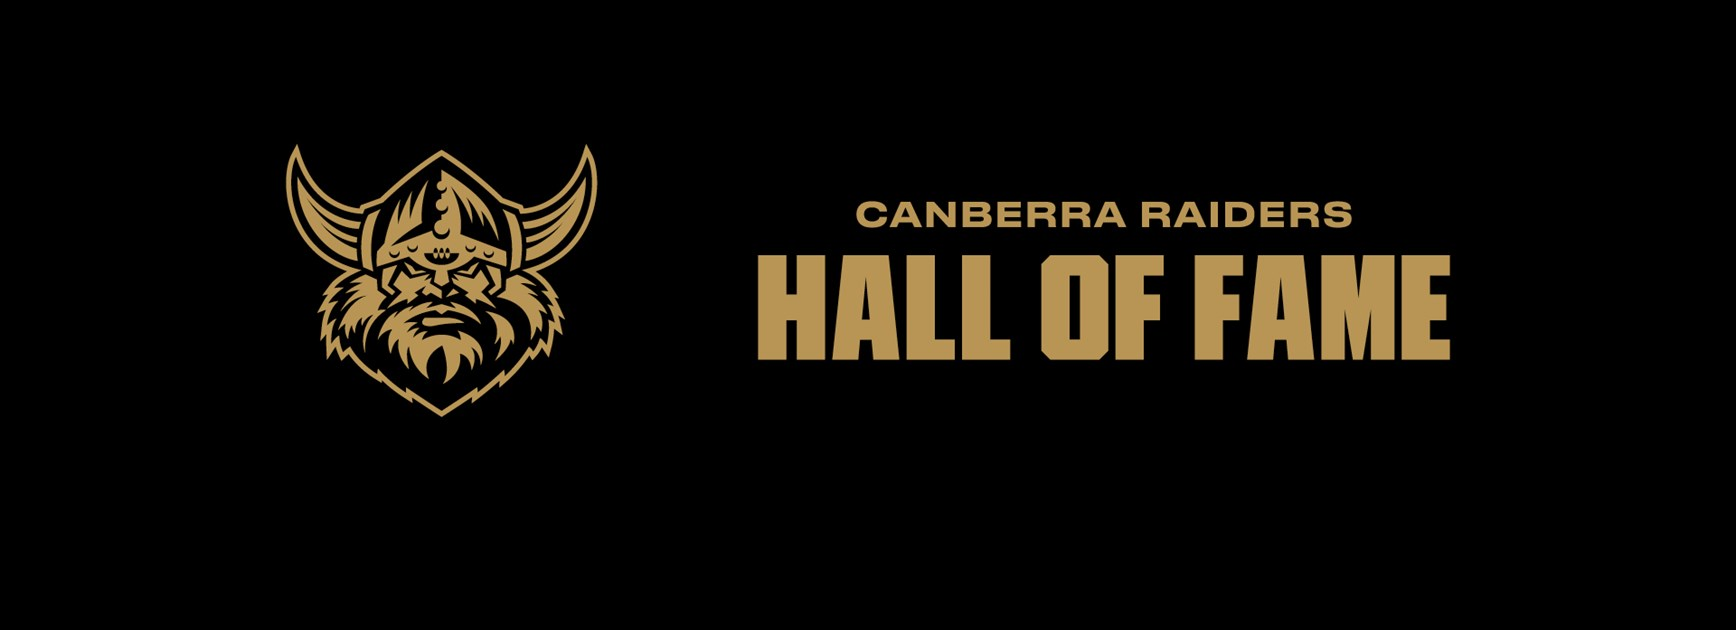 Canberra Raiders Announce Hall of Fame